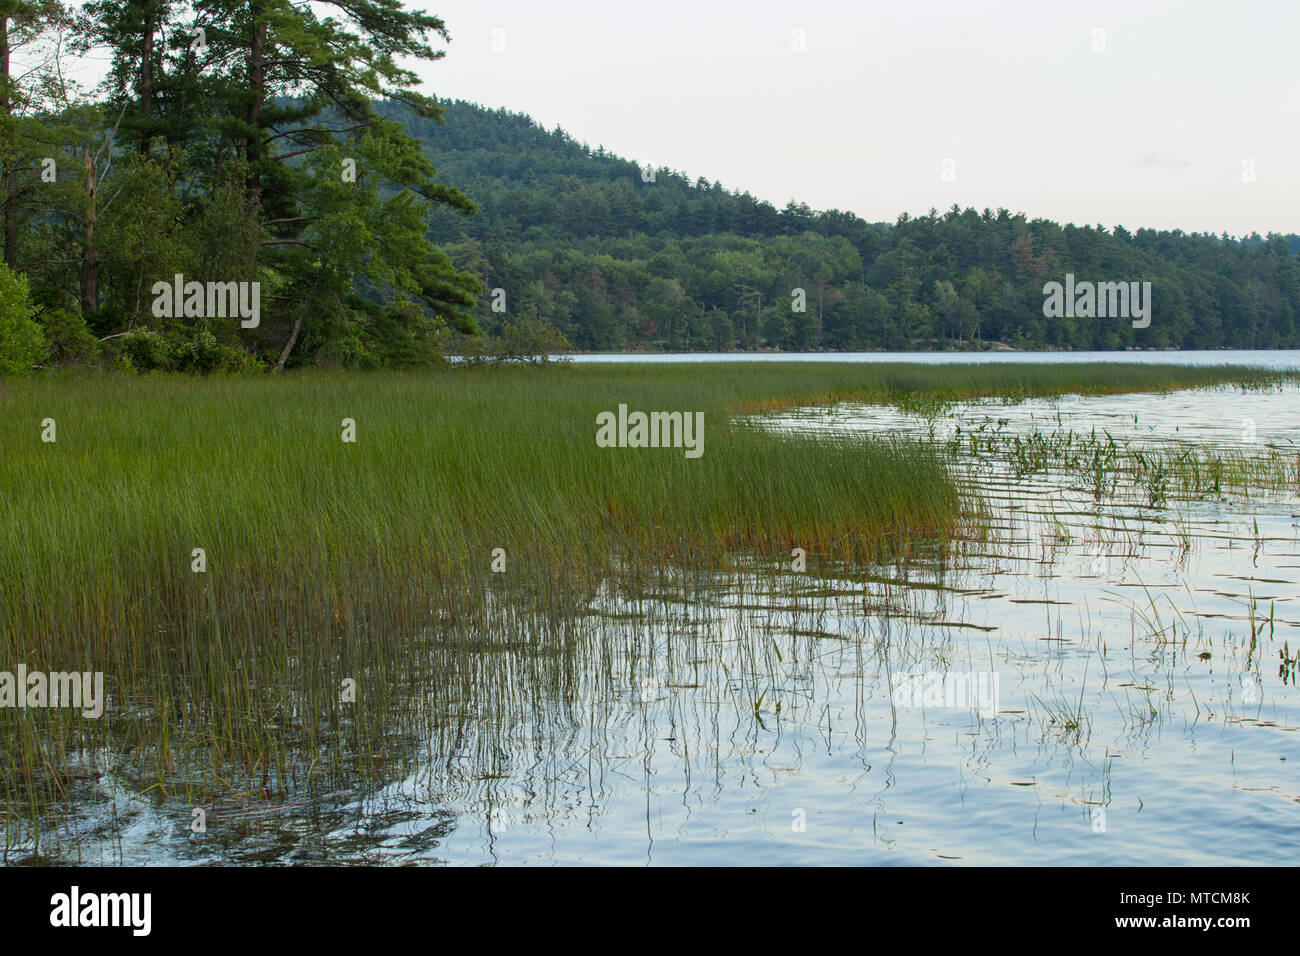 Drinking Water Source for City of Manchester, NH. covers 5.6 miles. Great location for family barbeques and sailing, hiking. Has hiking, biking trails - Stock Image